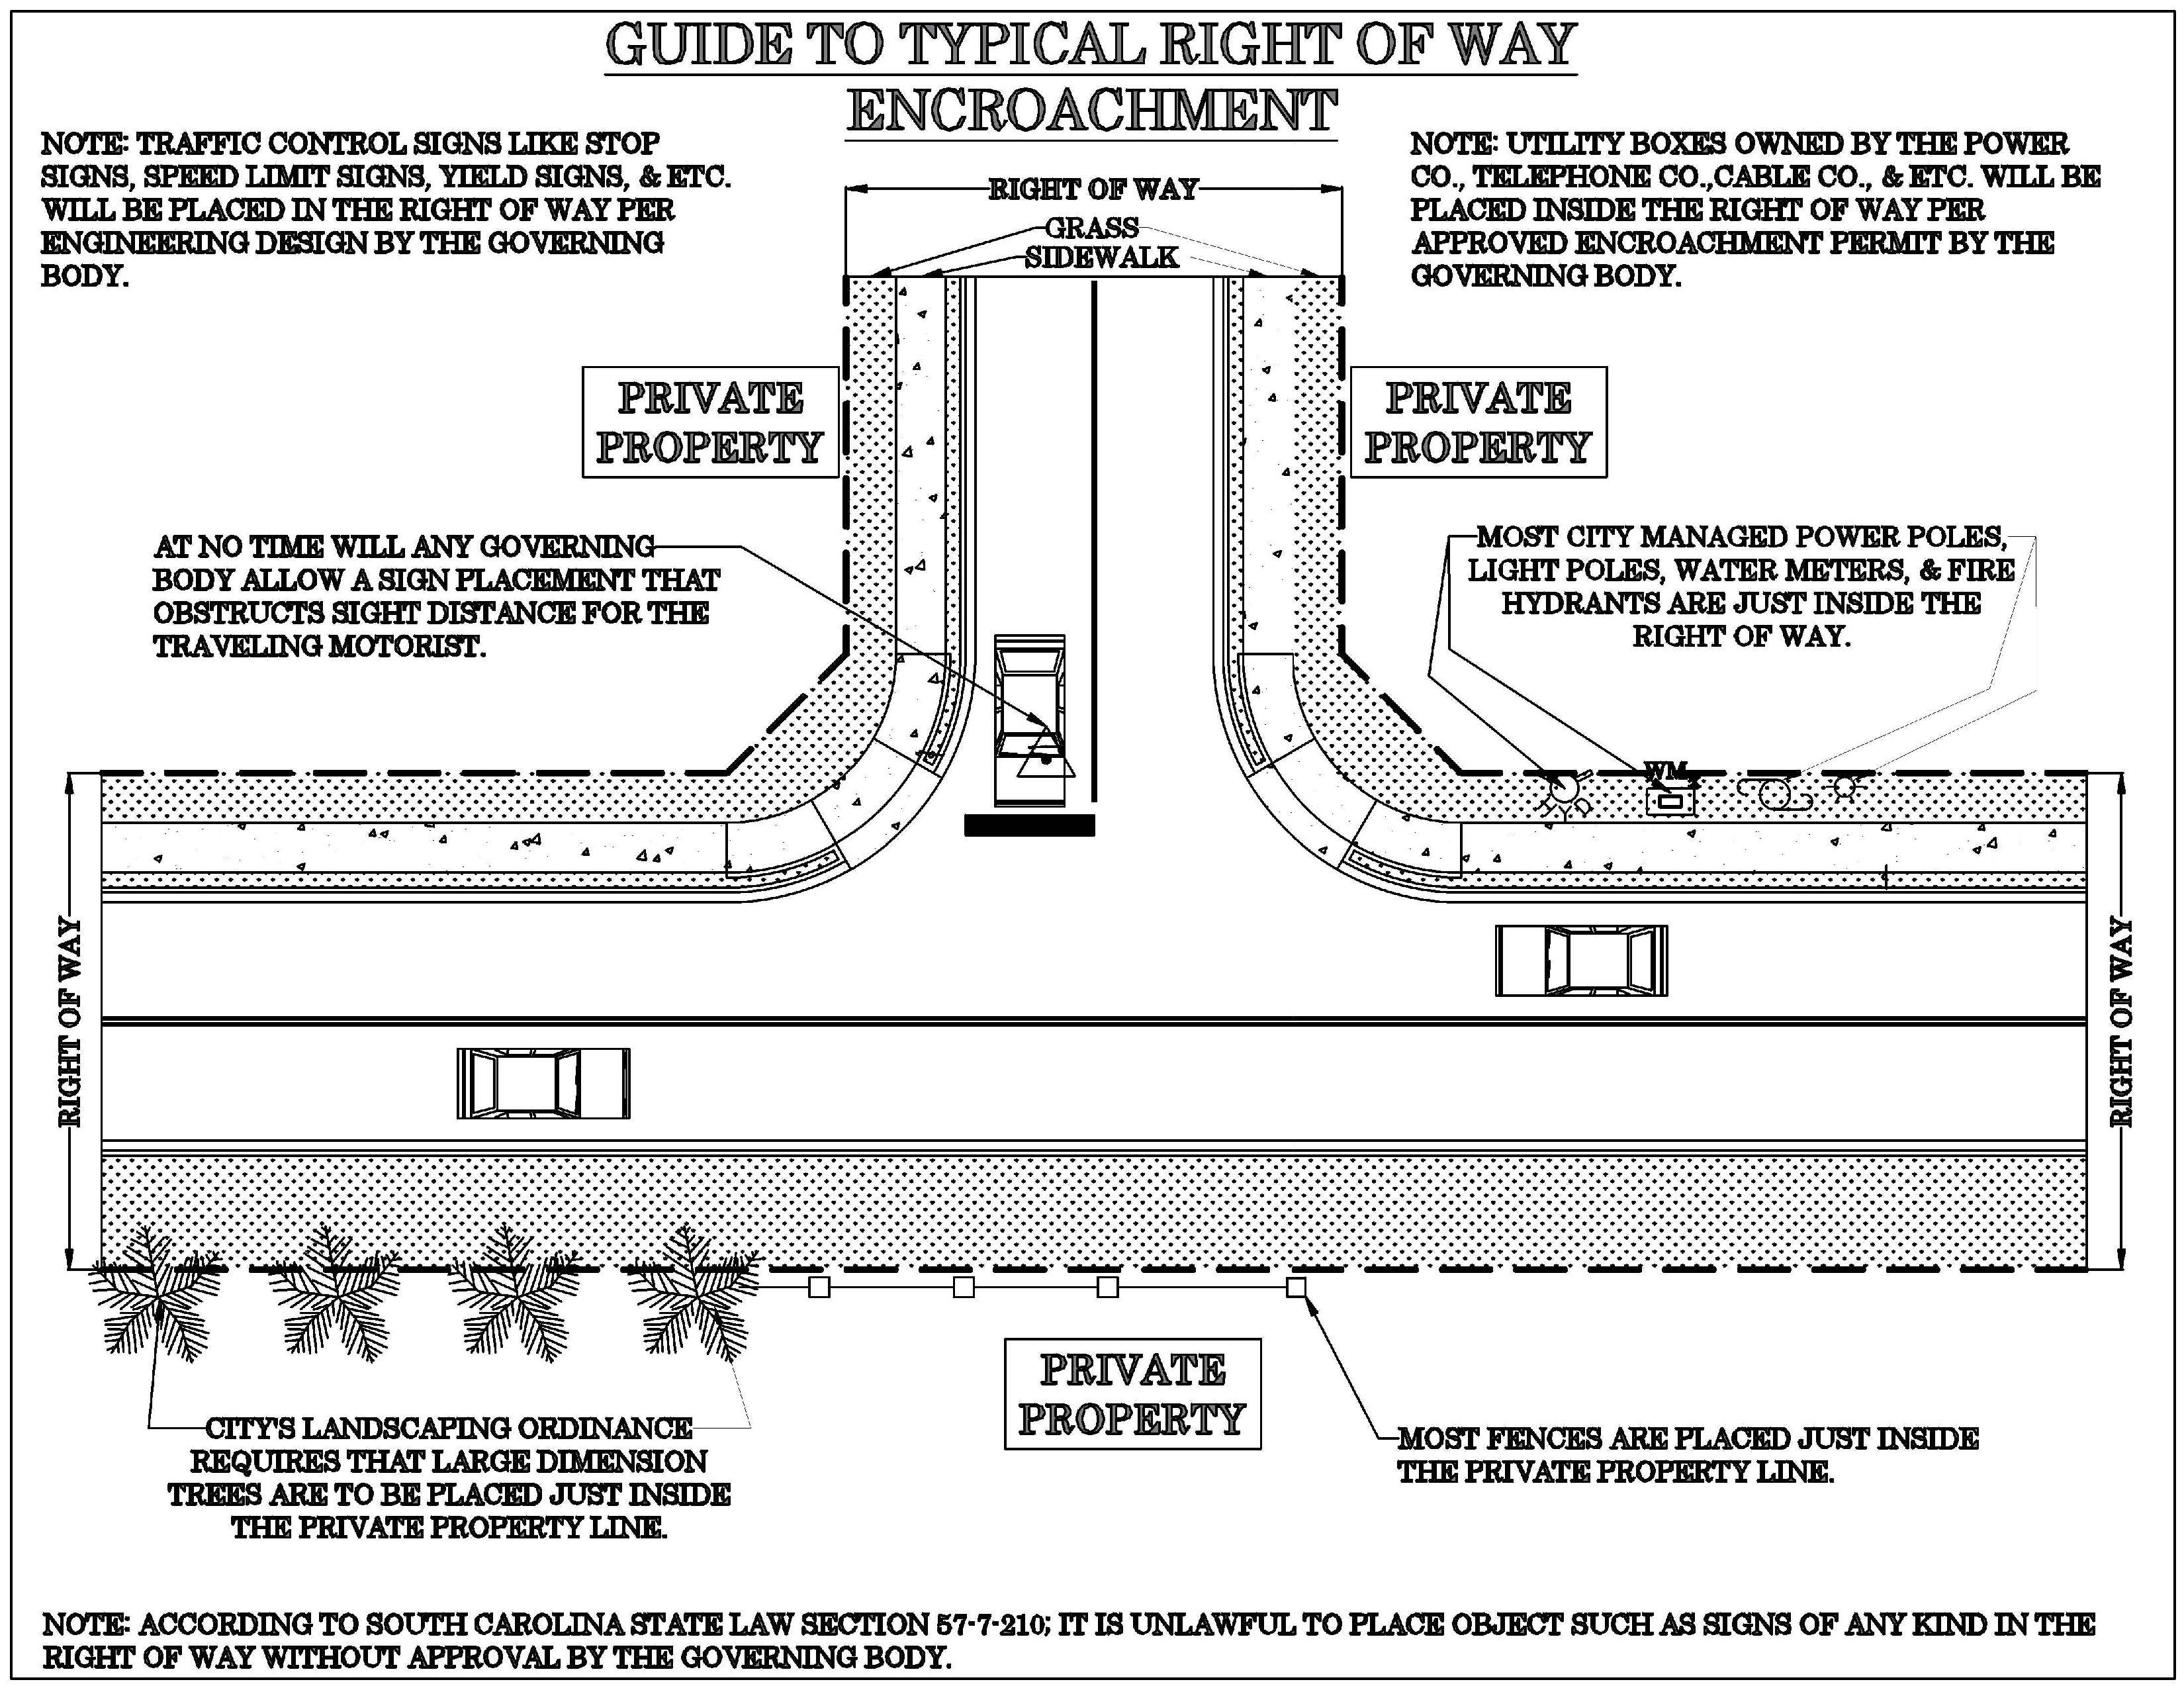 Guide to Typical Right of Way Encroachment